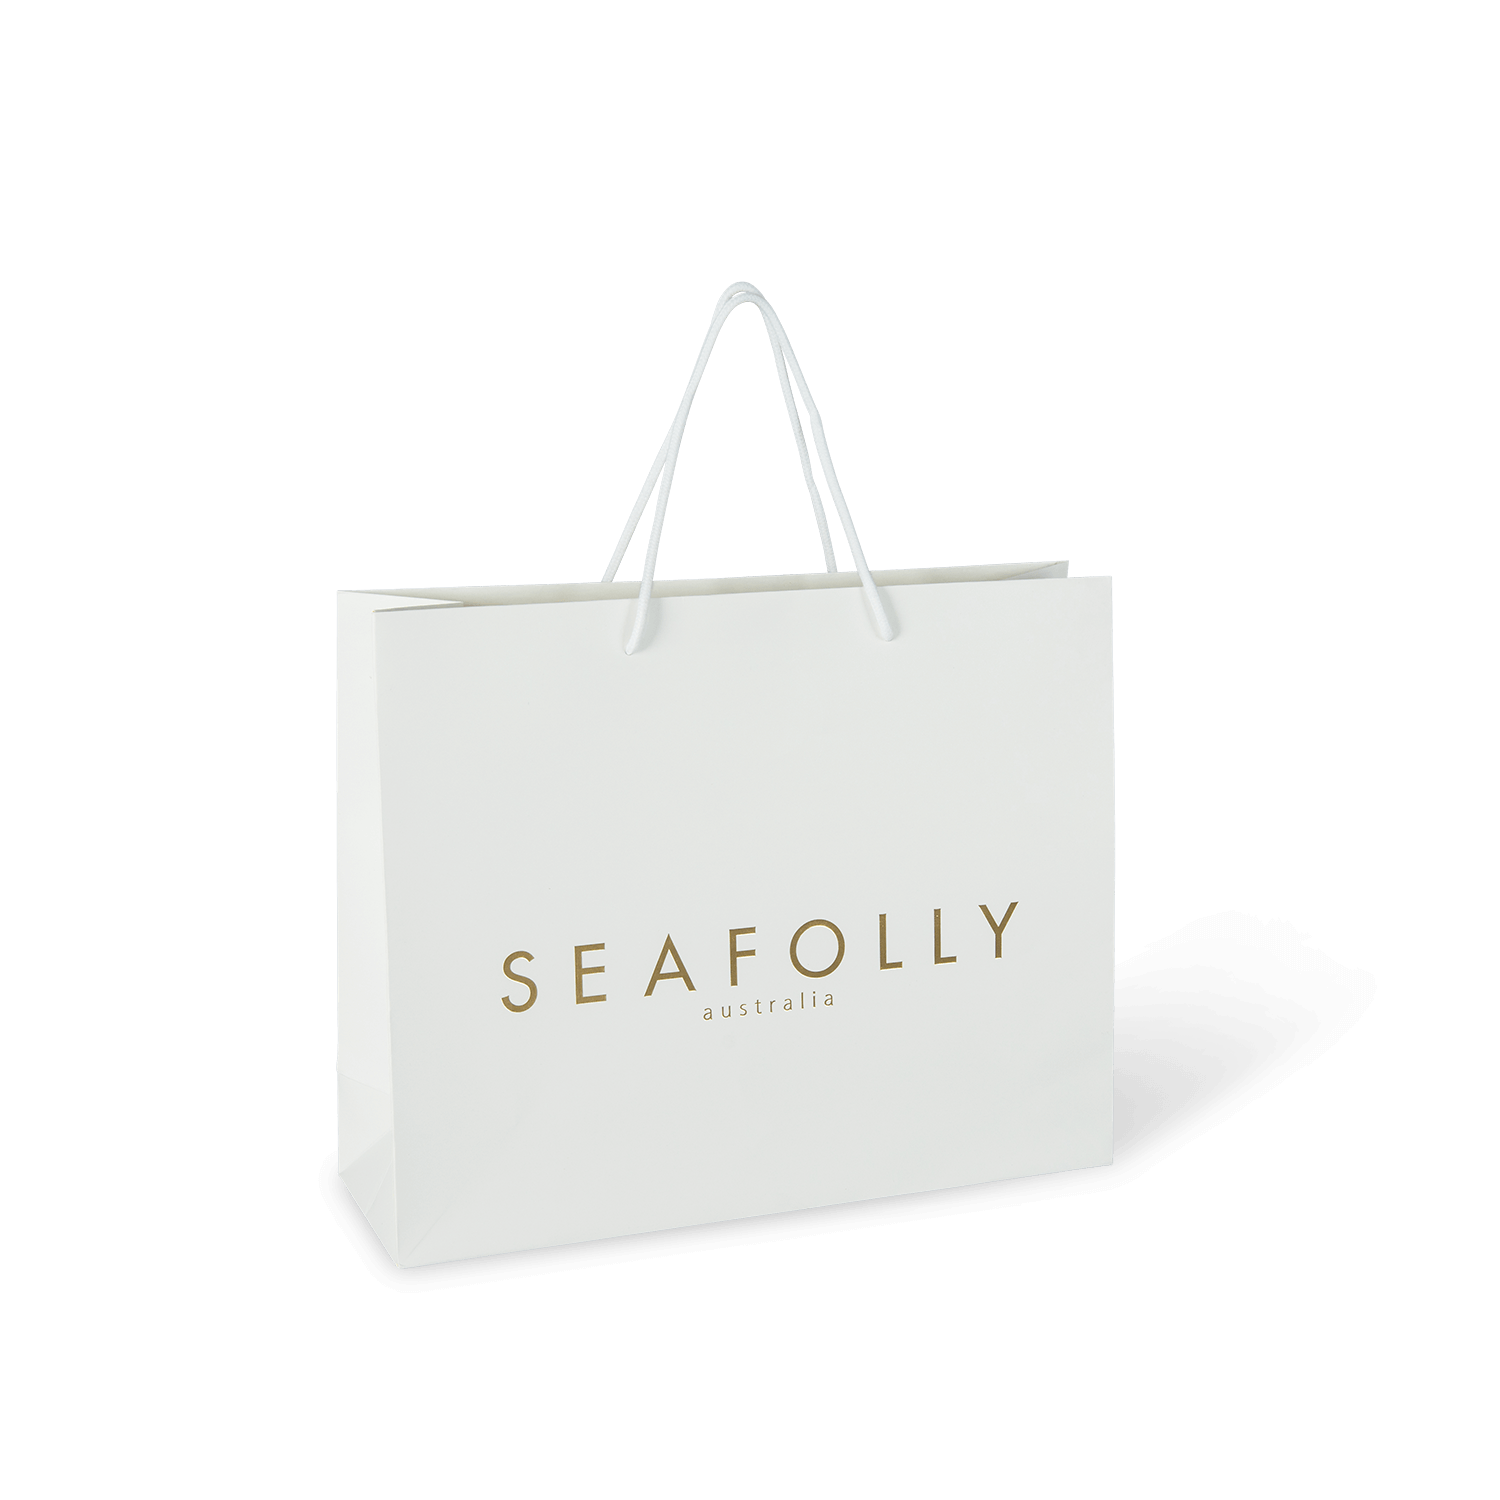 PaperPak Gallery Seafolly branded paper bag with rope handle